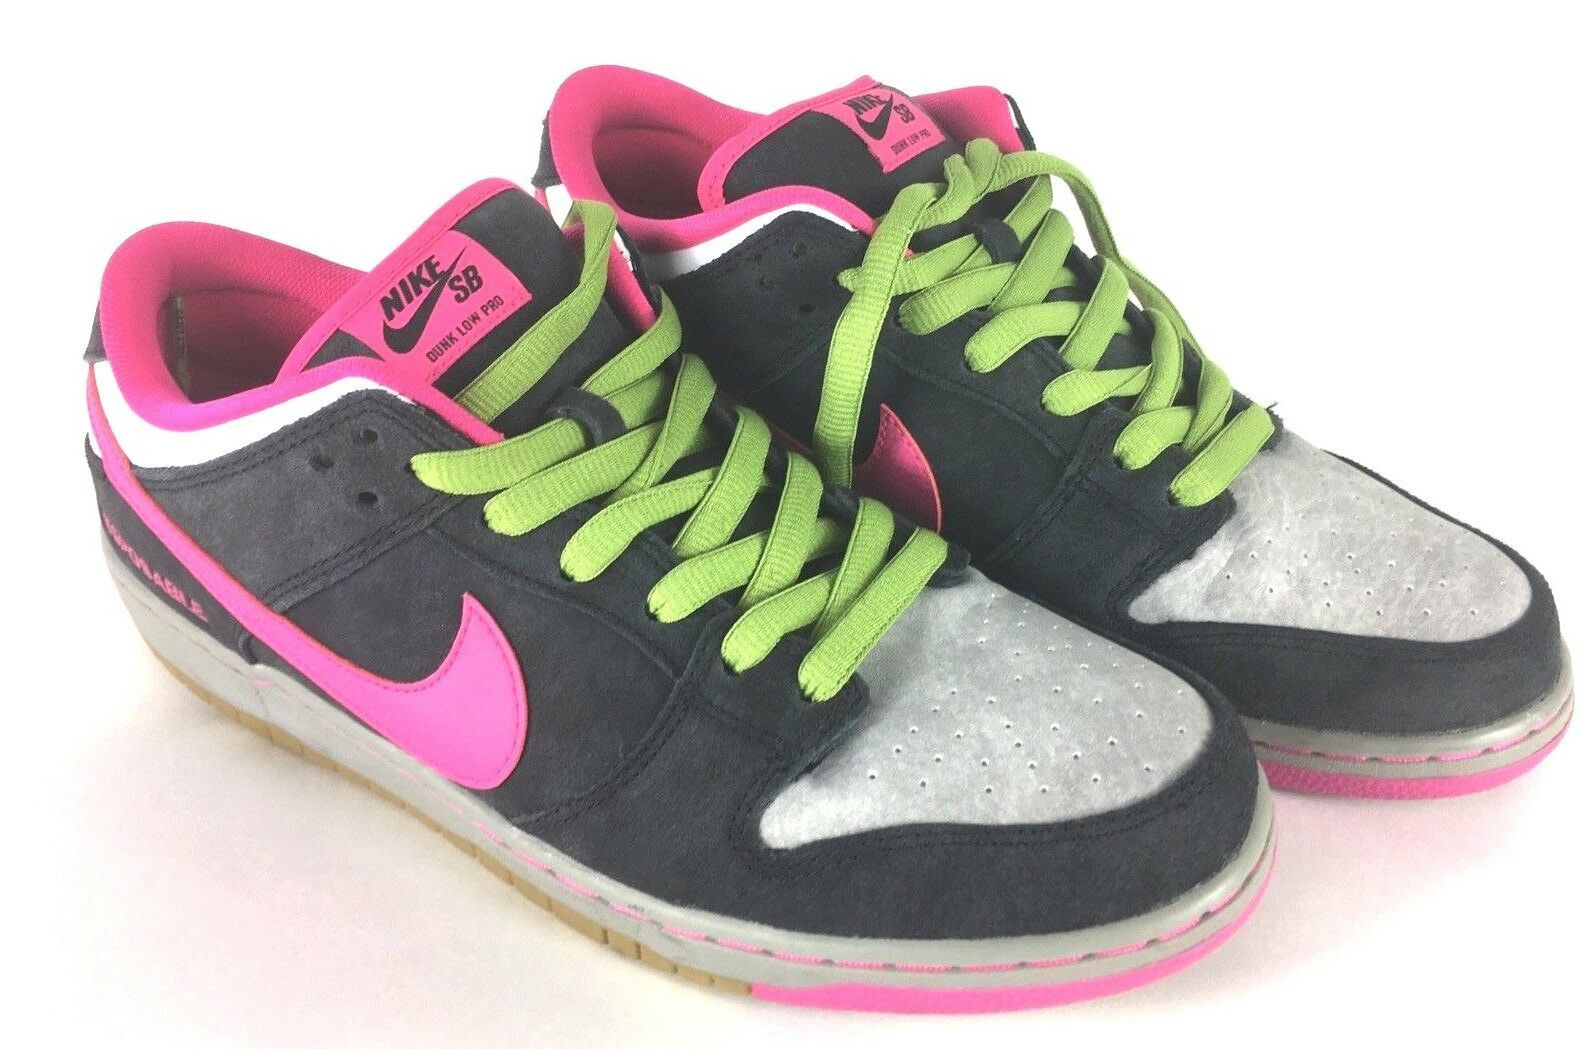 Nike Dunk Low Premium SB QS Disposable Grey Pink Gum 504750-061 Sz 12